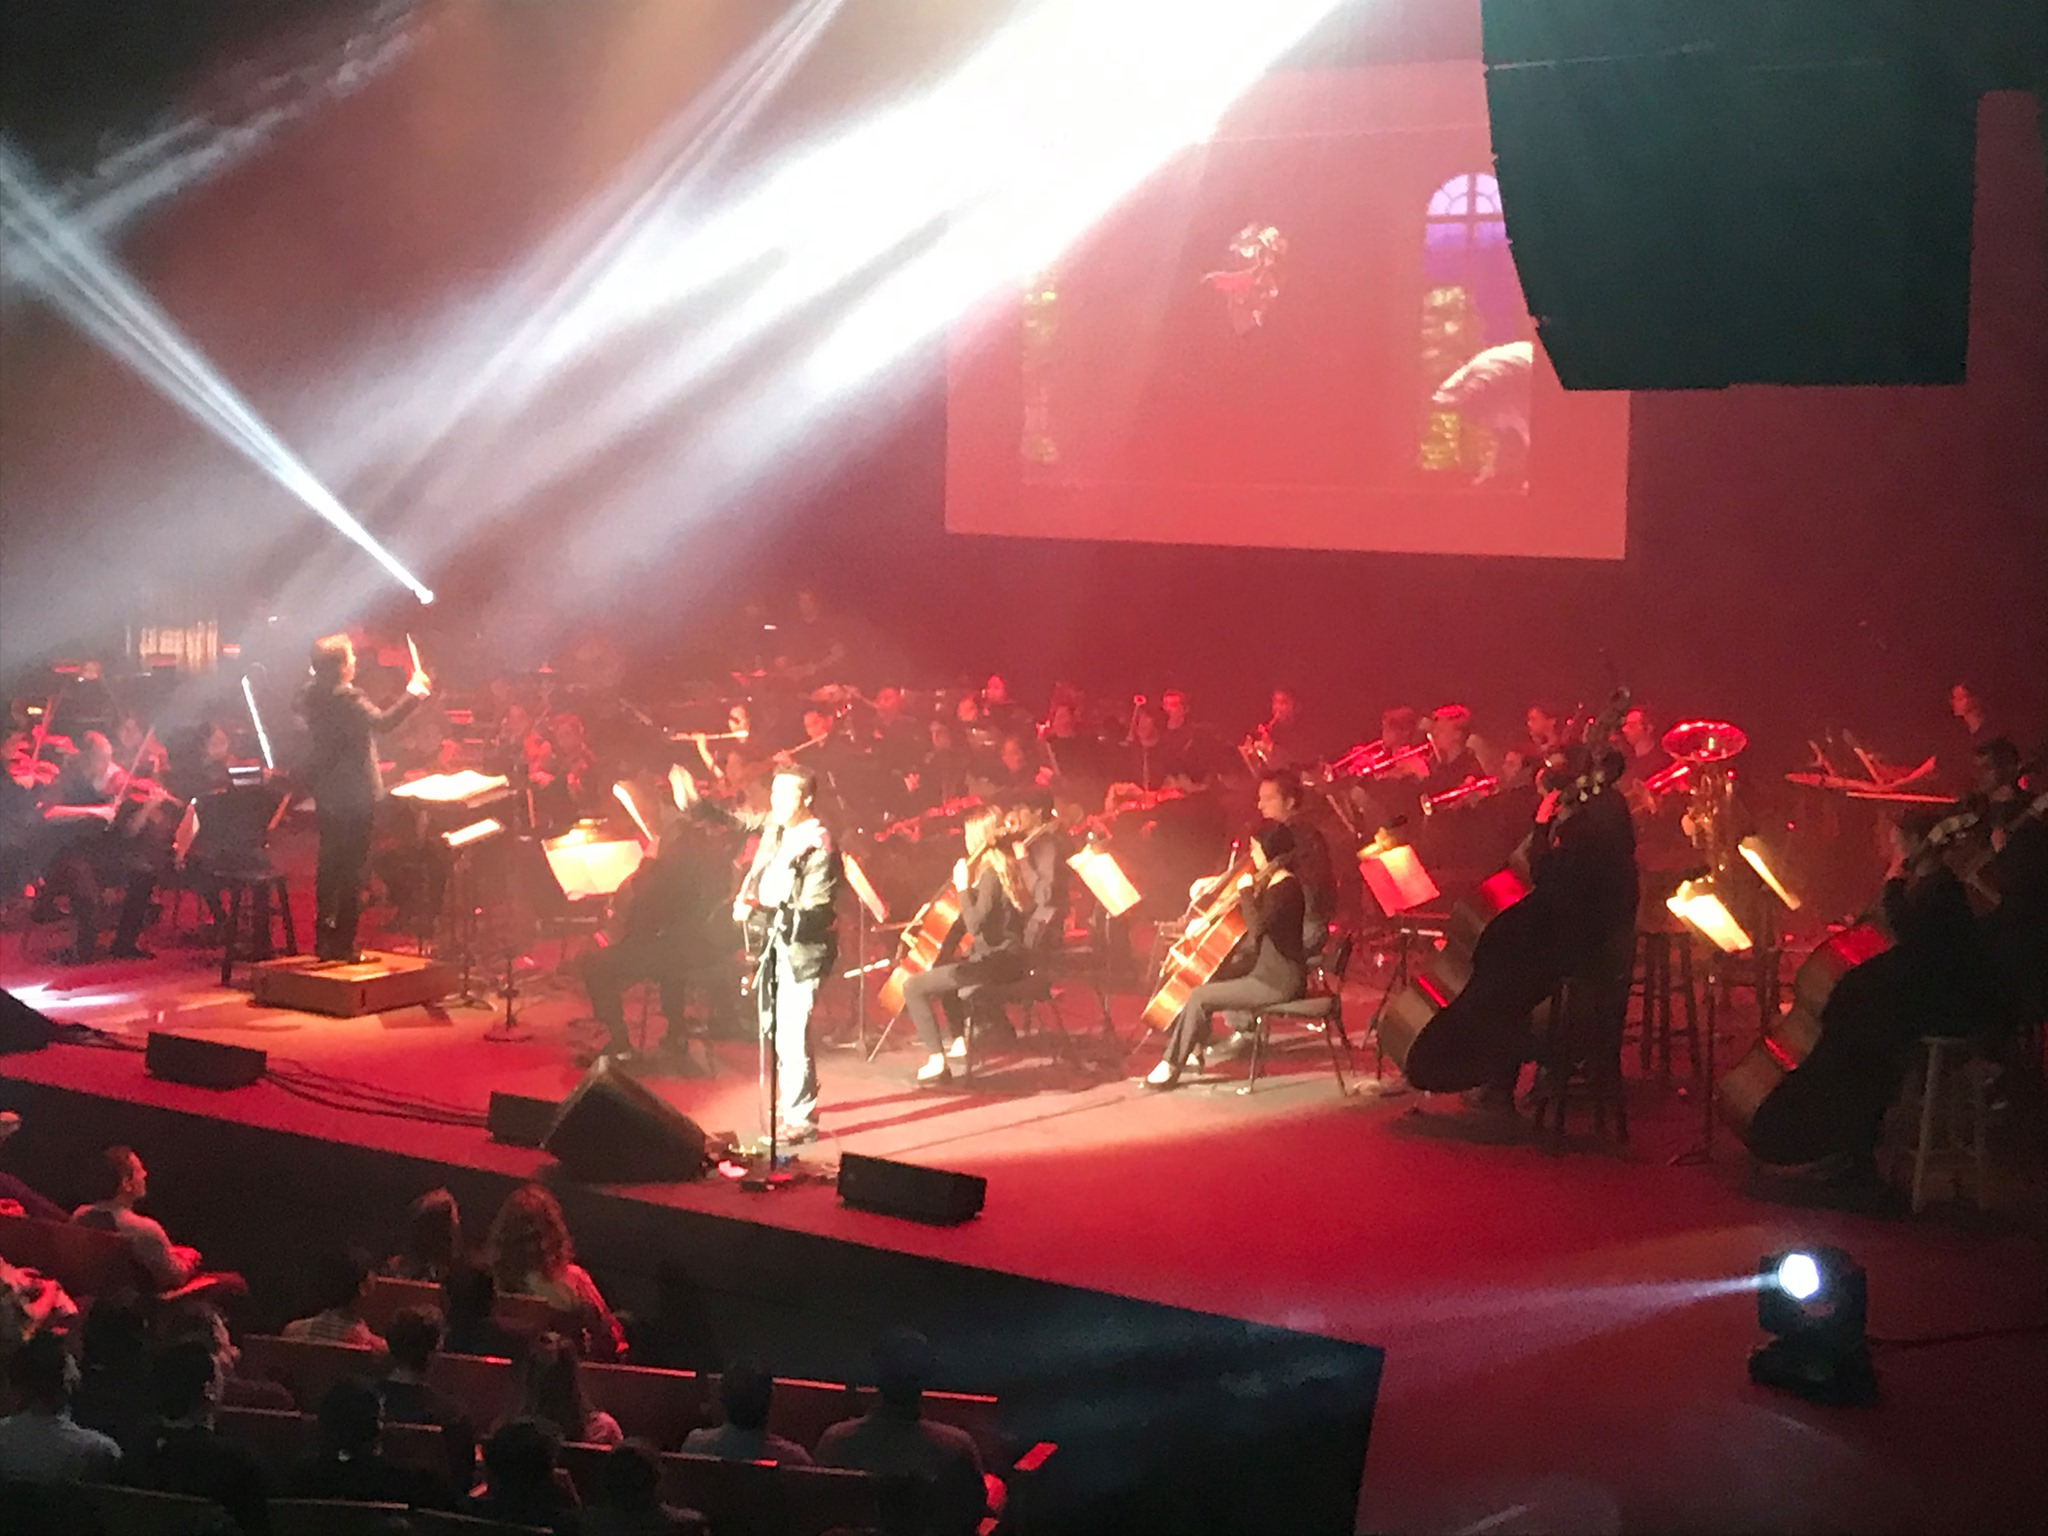 Video Games Live performance